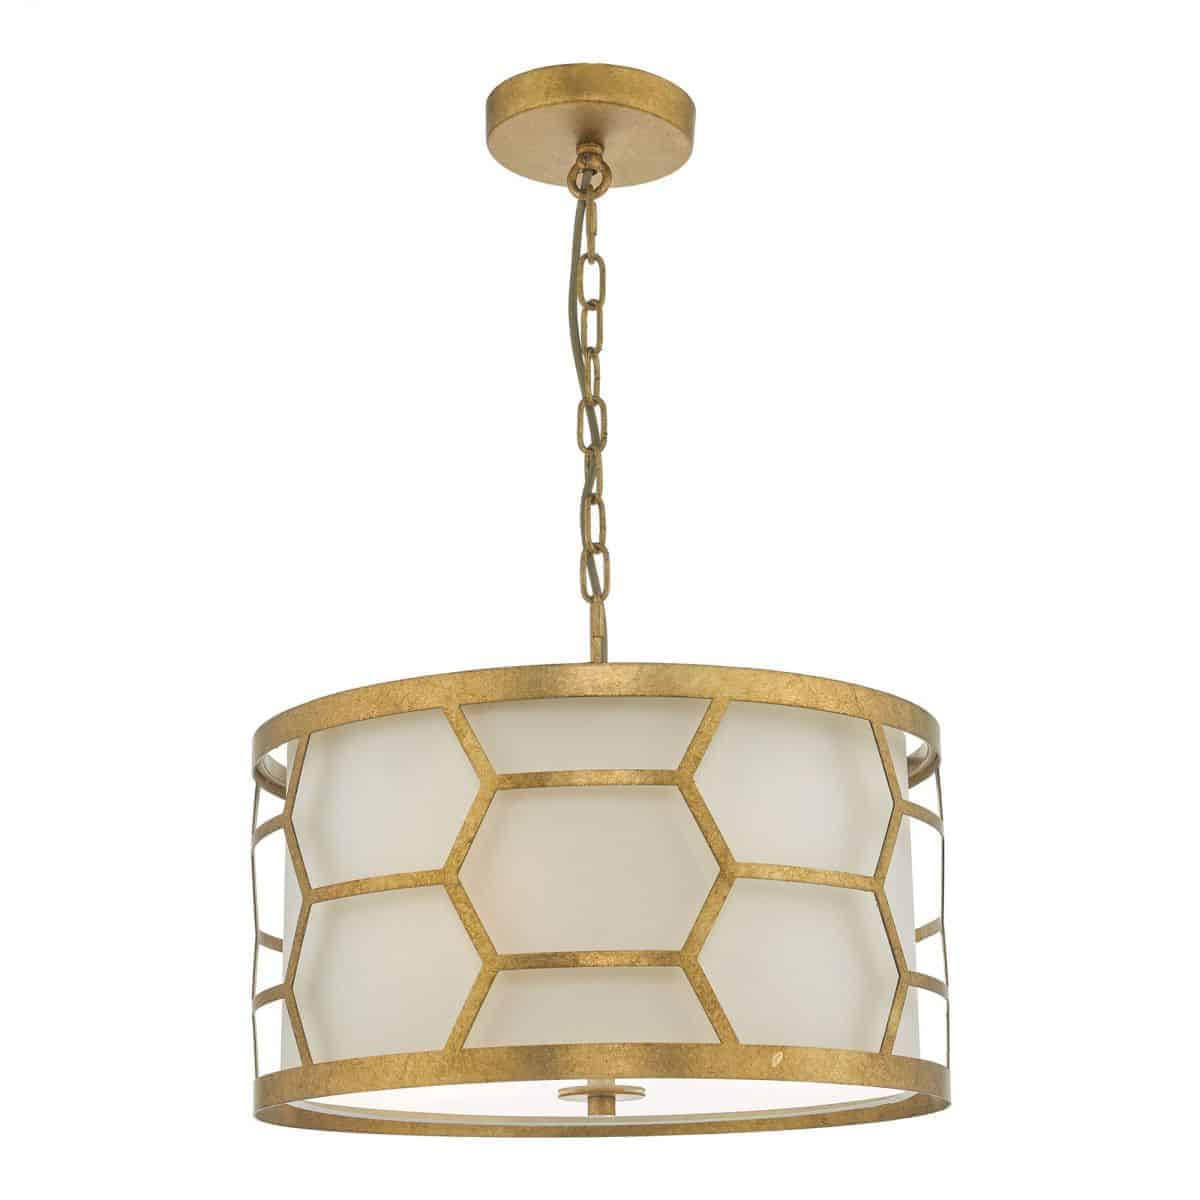 Dar EPS0312 Epstein 3 Light Pendant Gold & Ivory